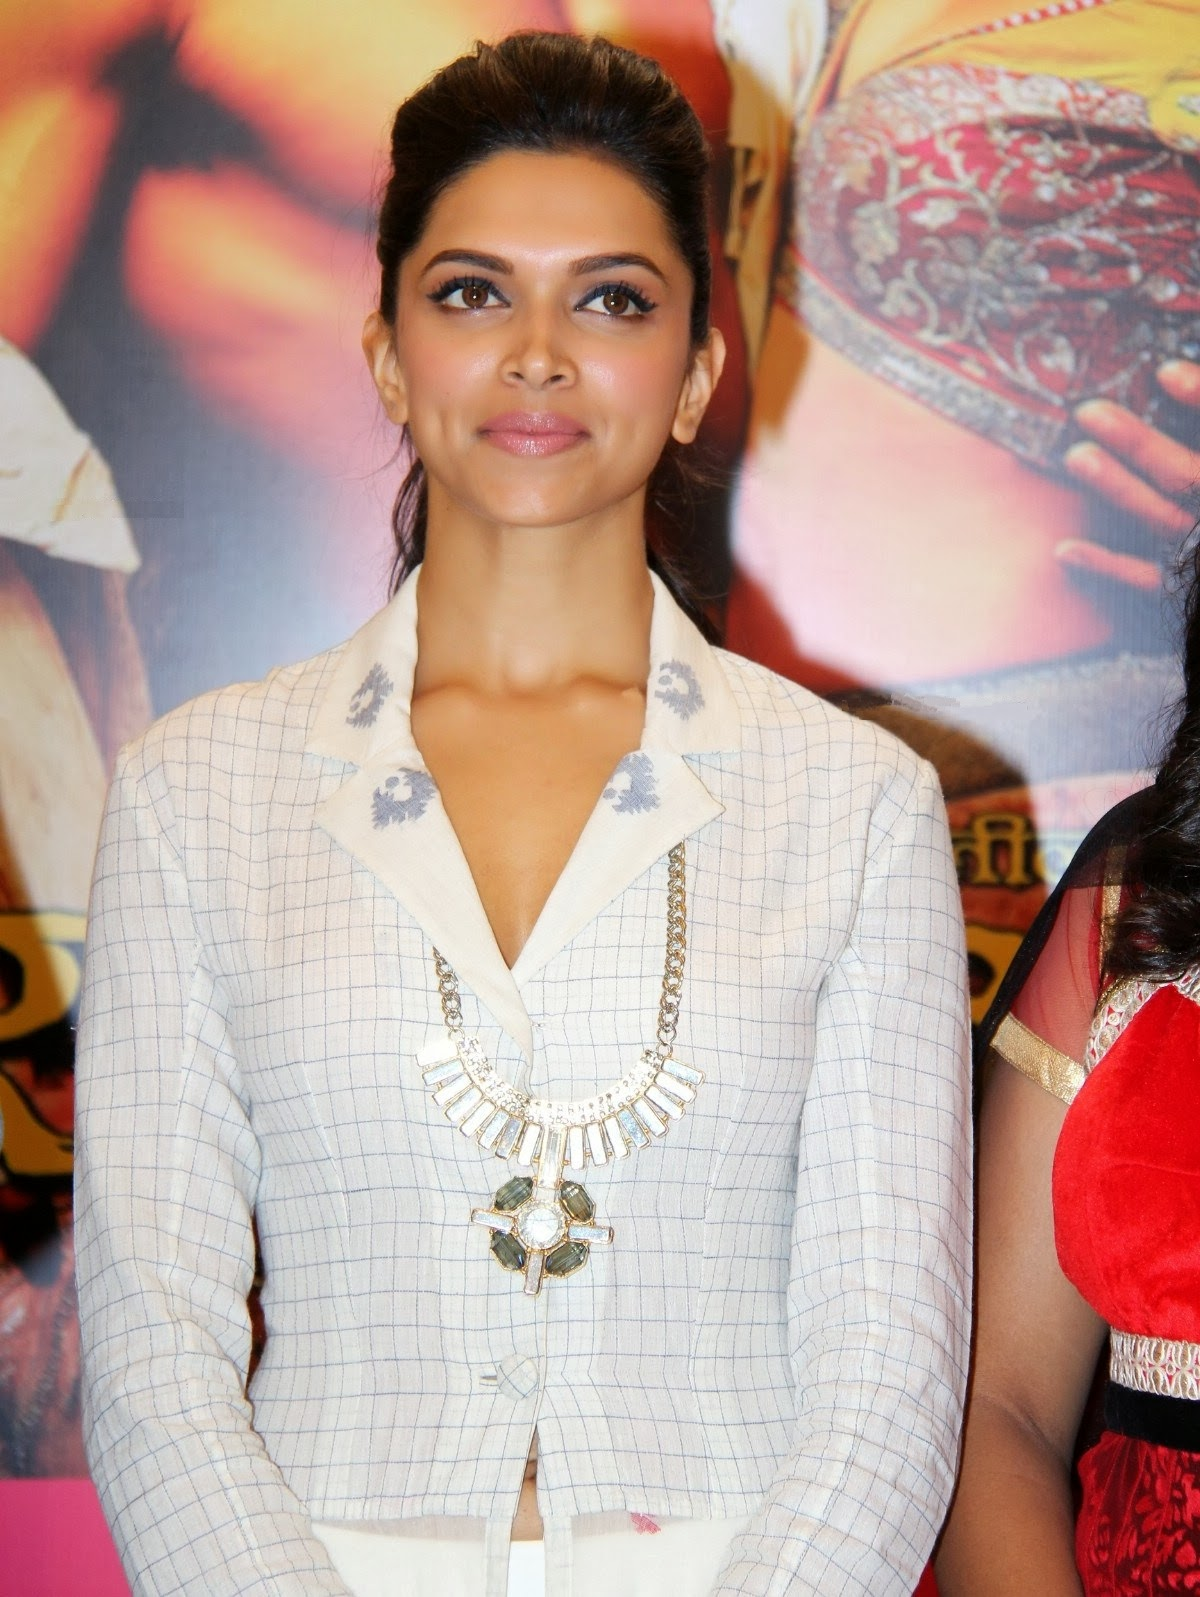 Deepika Padukone in White Shirt with Necklace Long Skirt Beautiful Pics Spotted Promoting Raas Leela